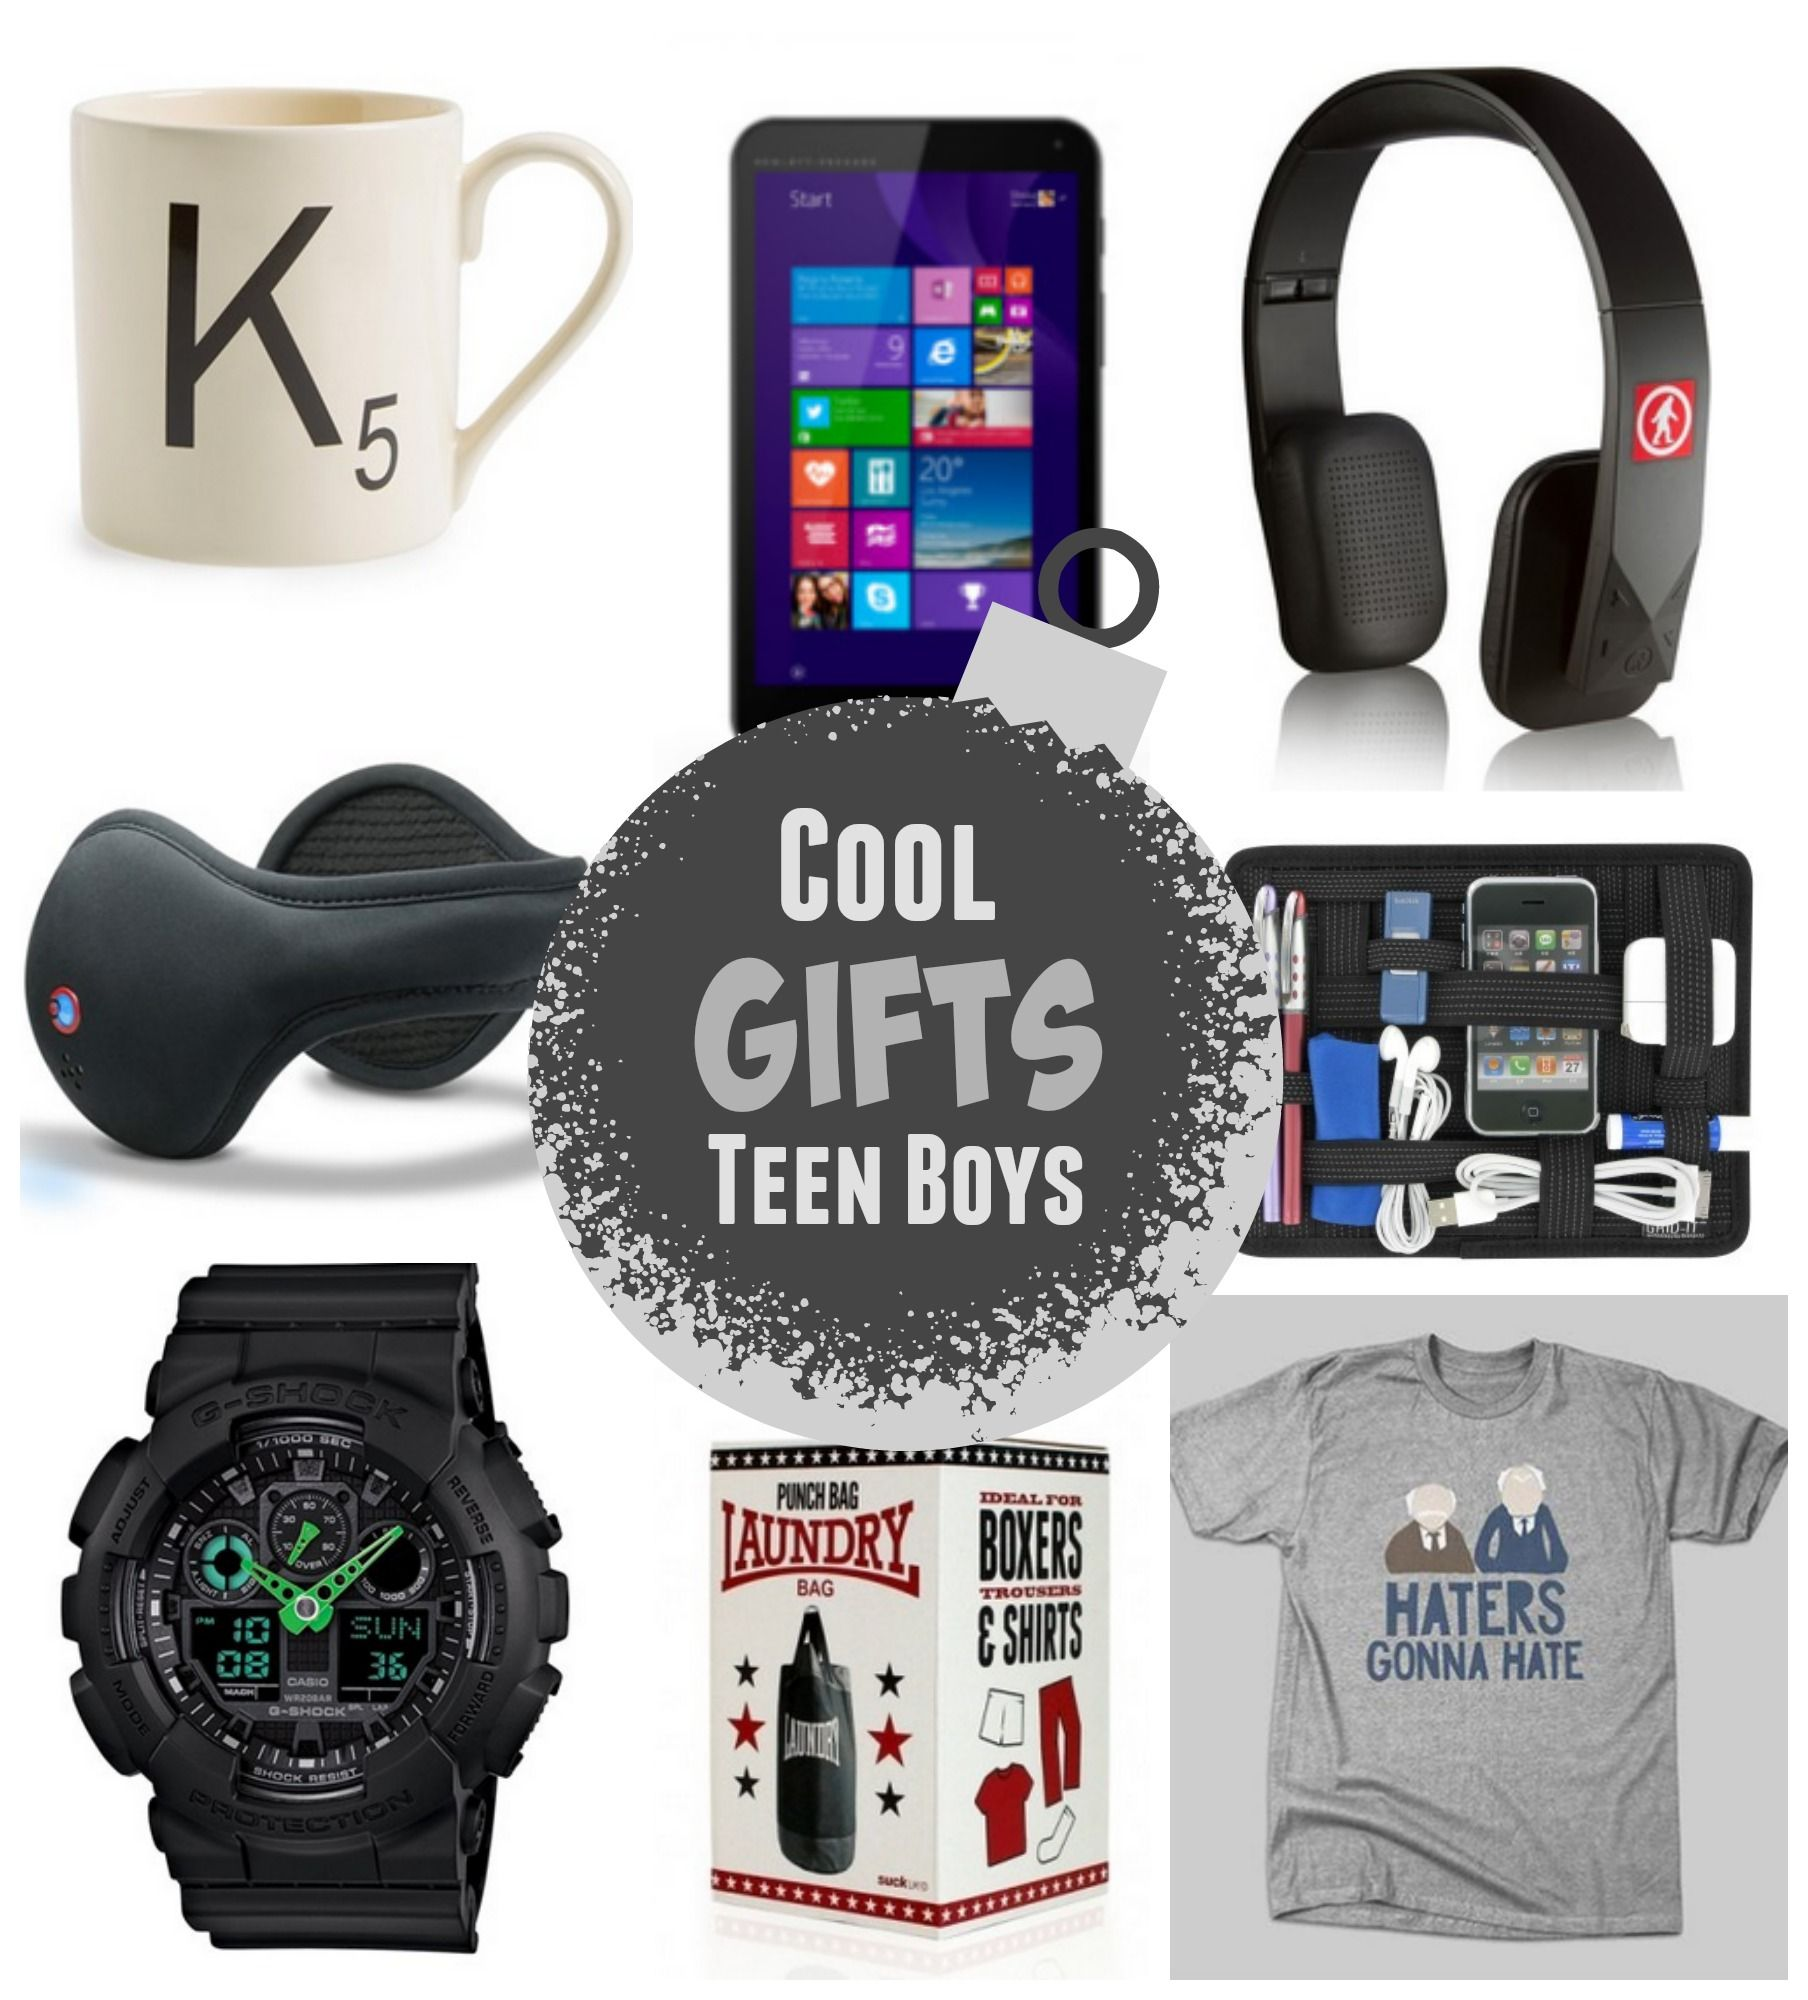 Great ts for teen boys …